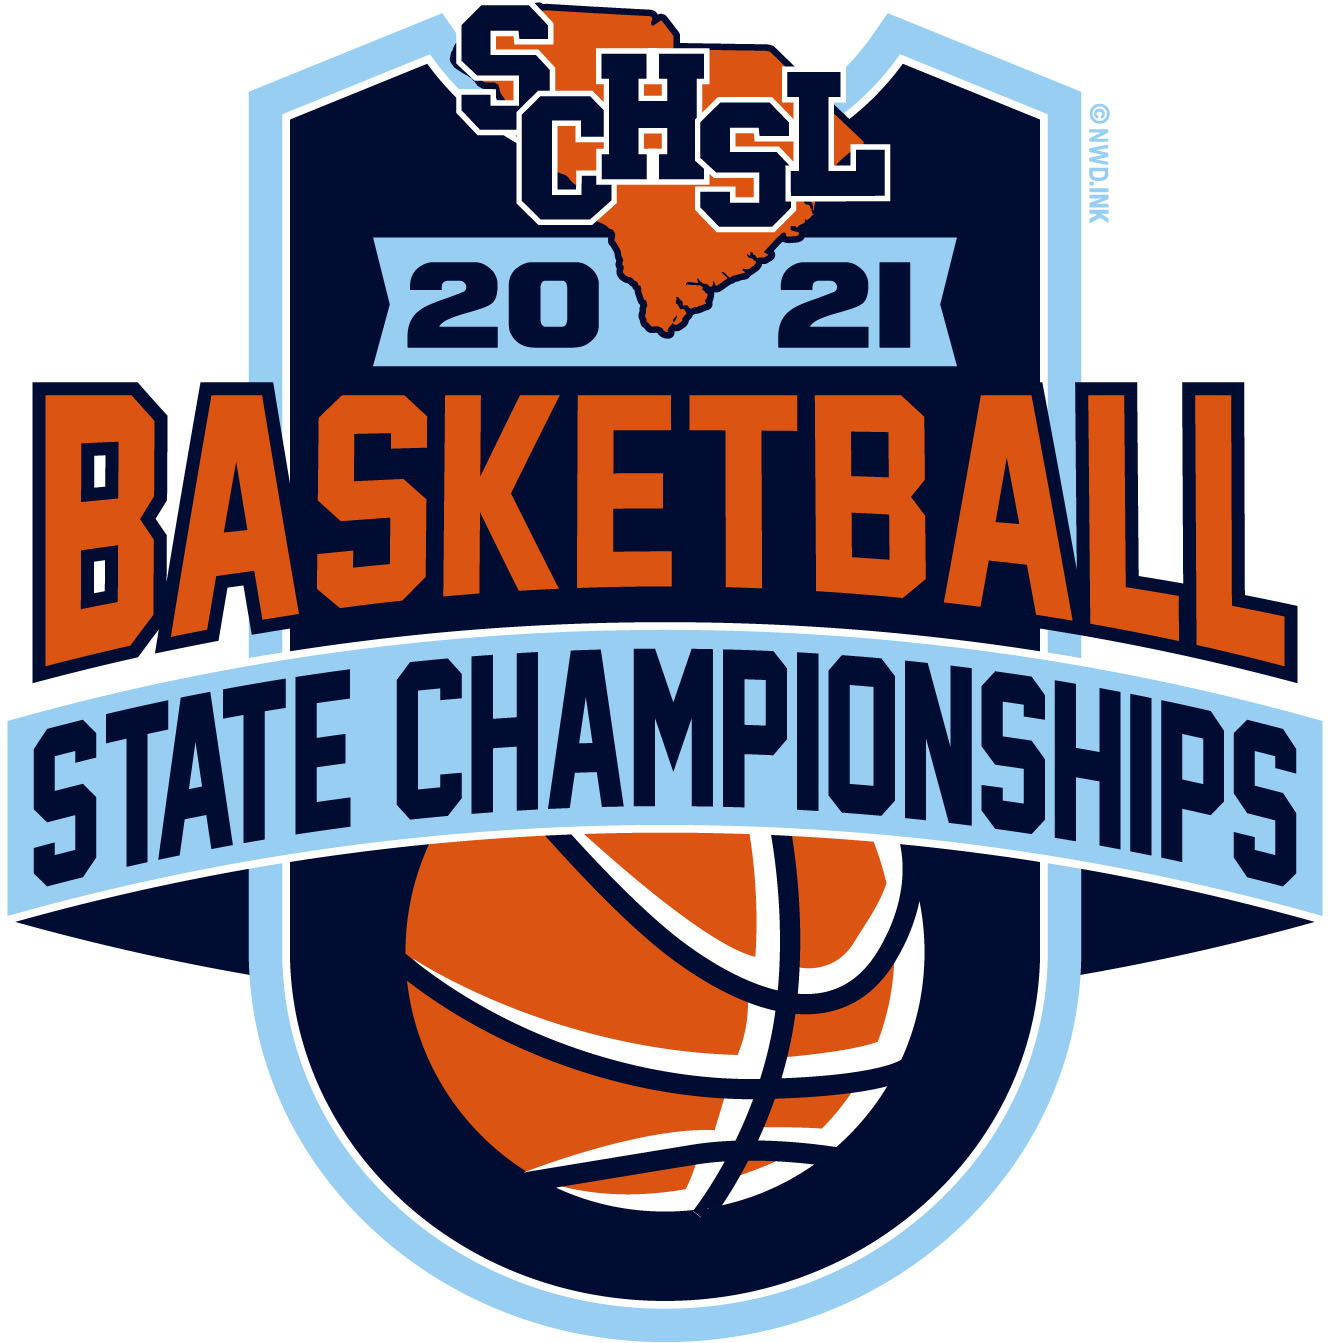 Men's Basketball Lower State Championship Game Between River Bluff and Dutch Fork – Details Here